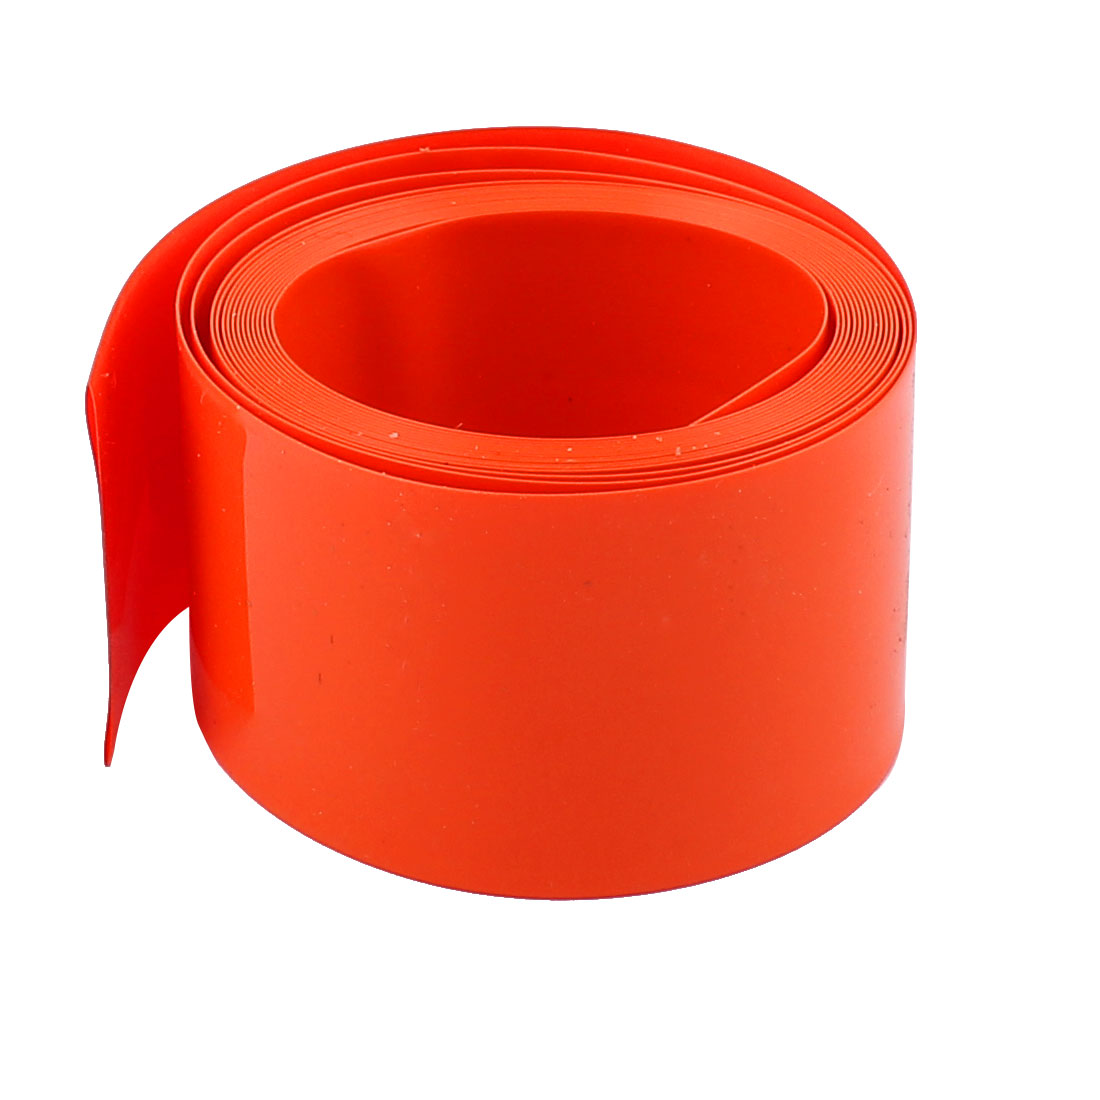 2m x 18.5mm PVC Inaulated Heat Shrinkable Tube Battery Protective Casing Orange